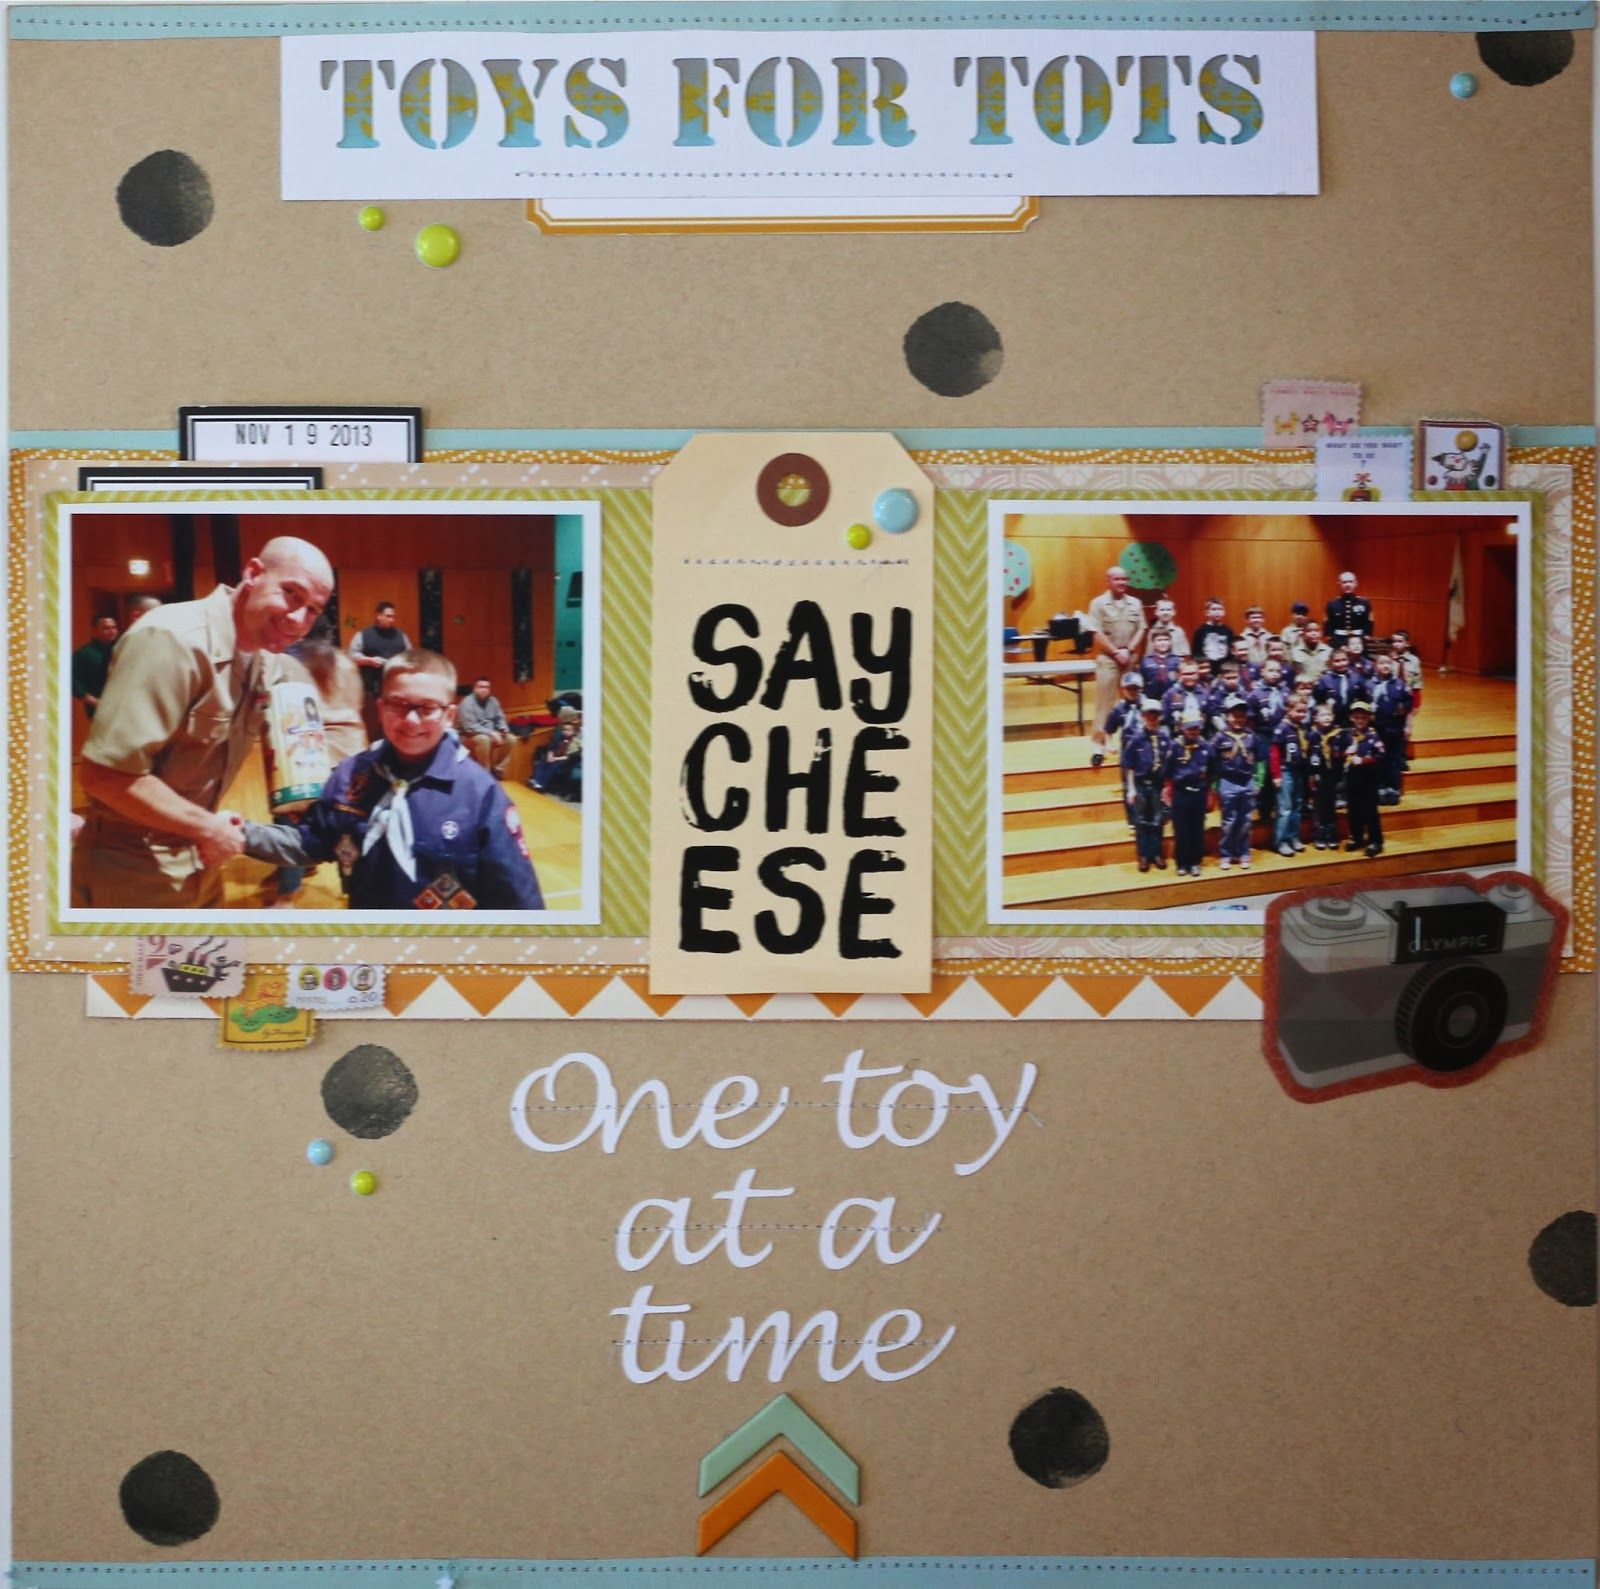 Toys for tots images  Toys for Tots layout by MaryAnn Maldonado using StudioCalico